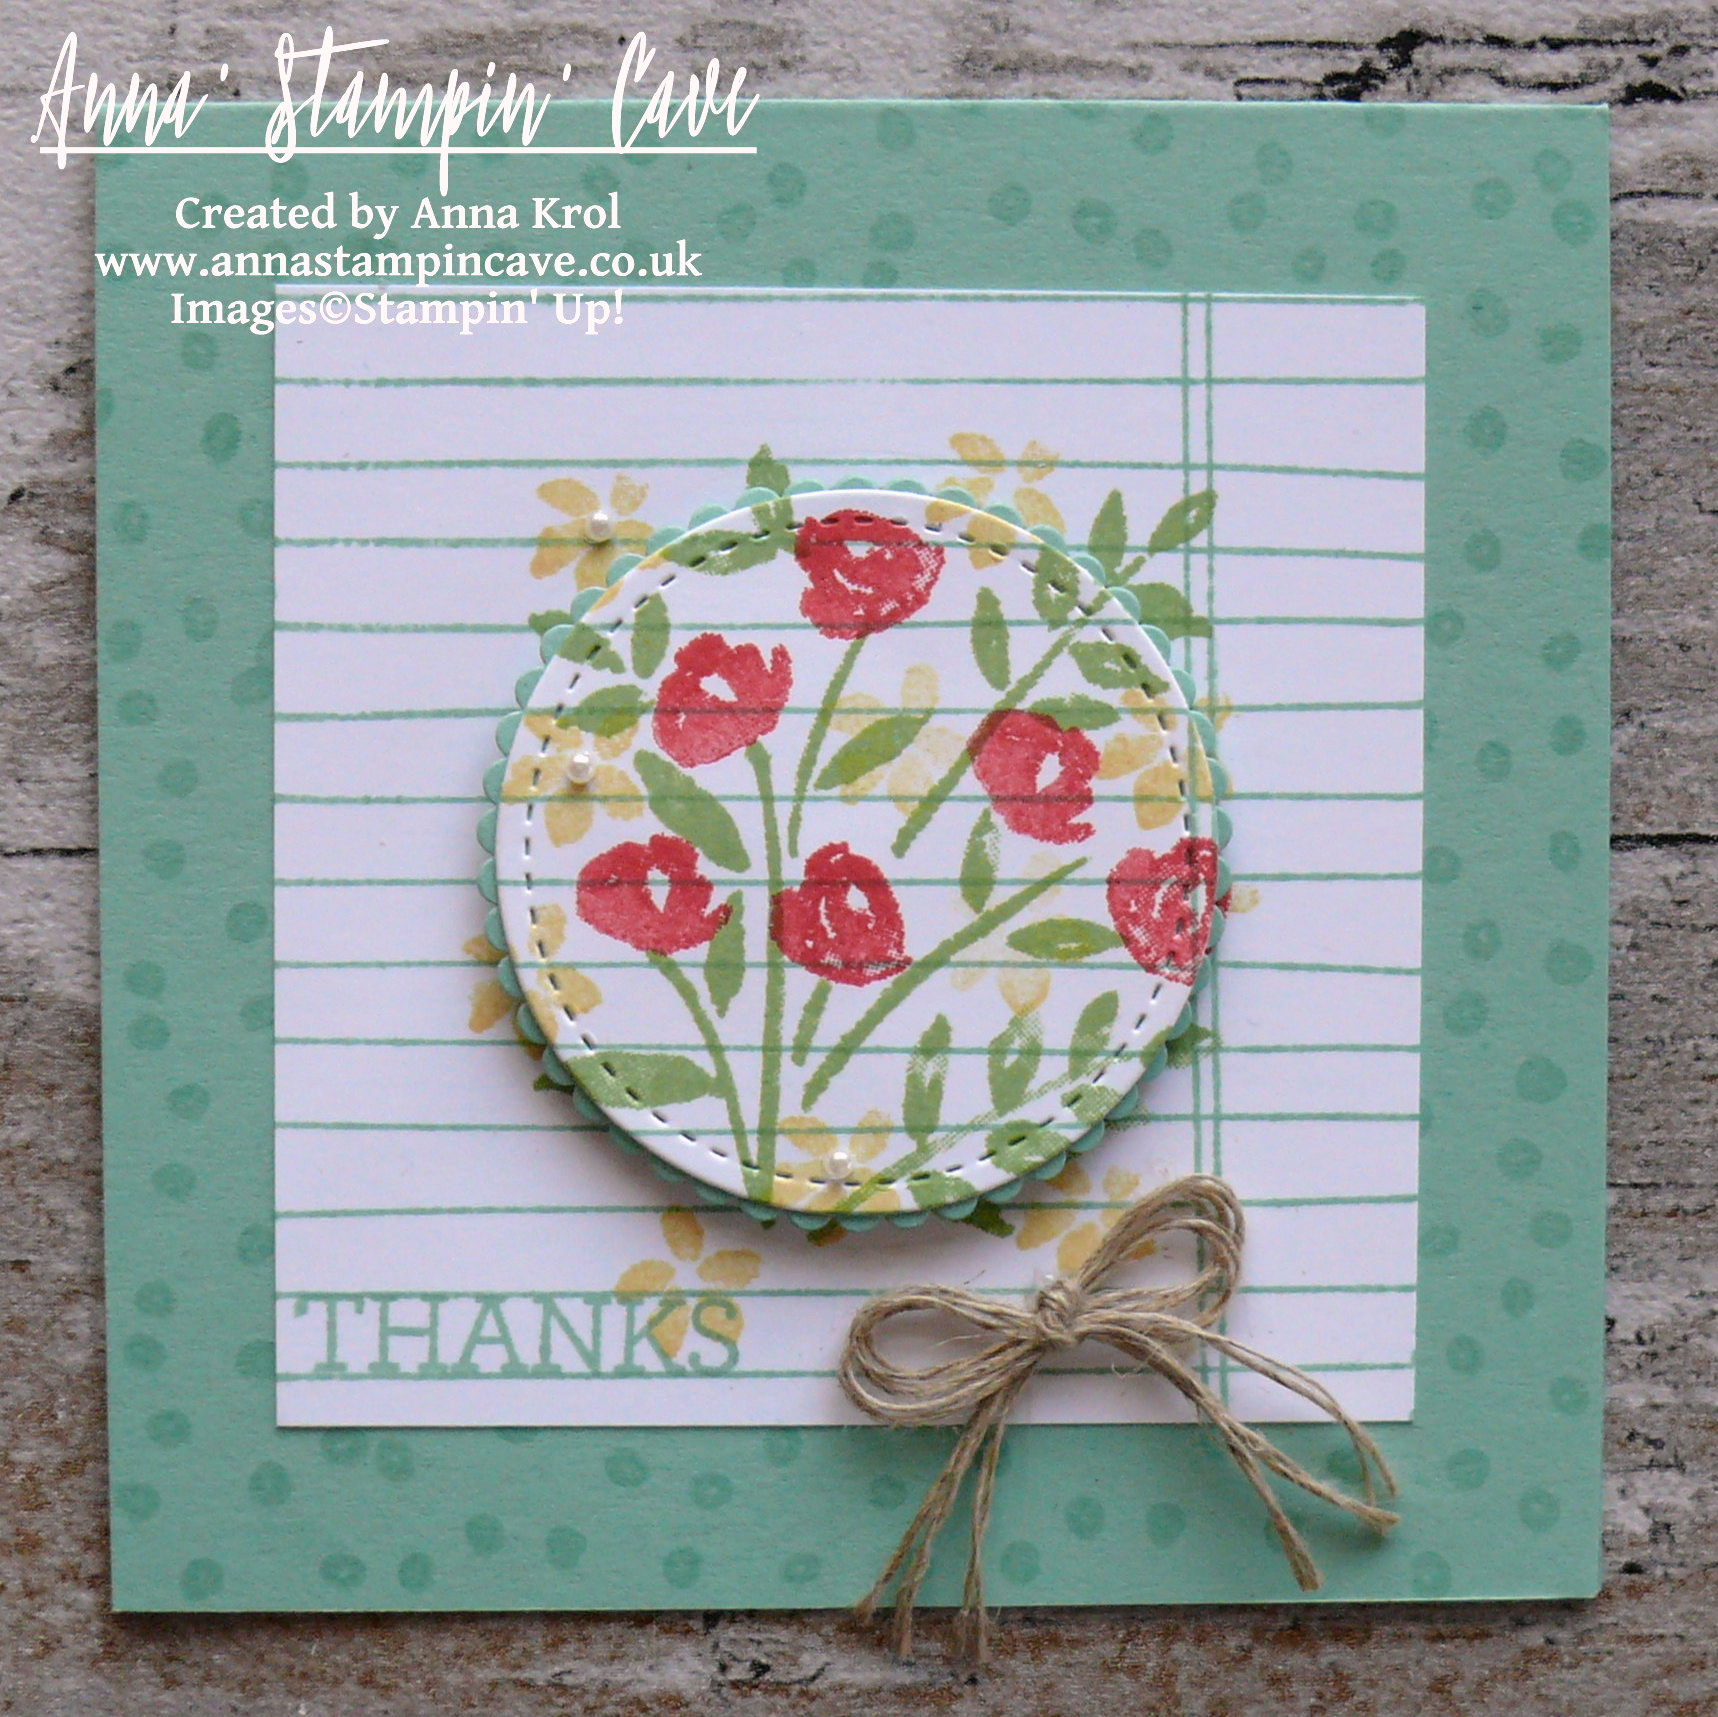 Anna' Stampin' Cave - Stampin' Up! Number Of Years Stamp Set - Hello Spring Mint Macaron Notecard